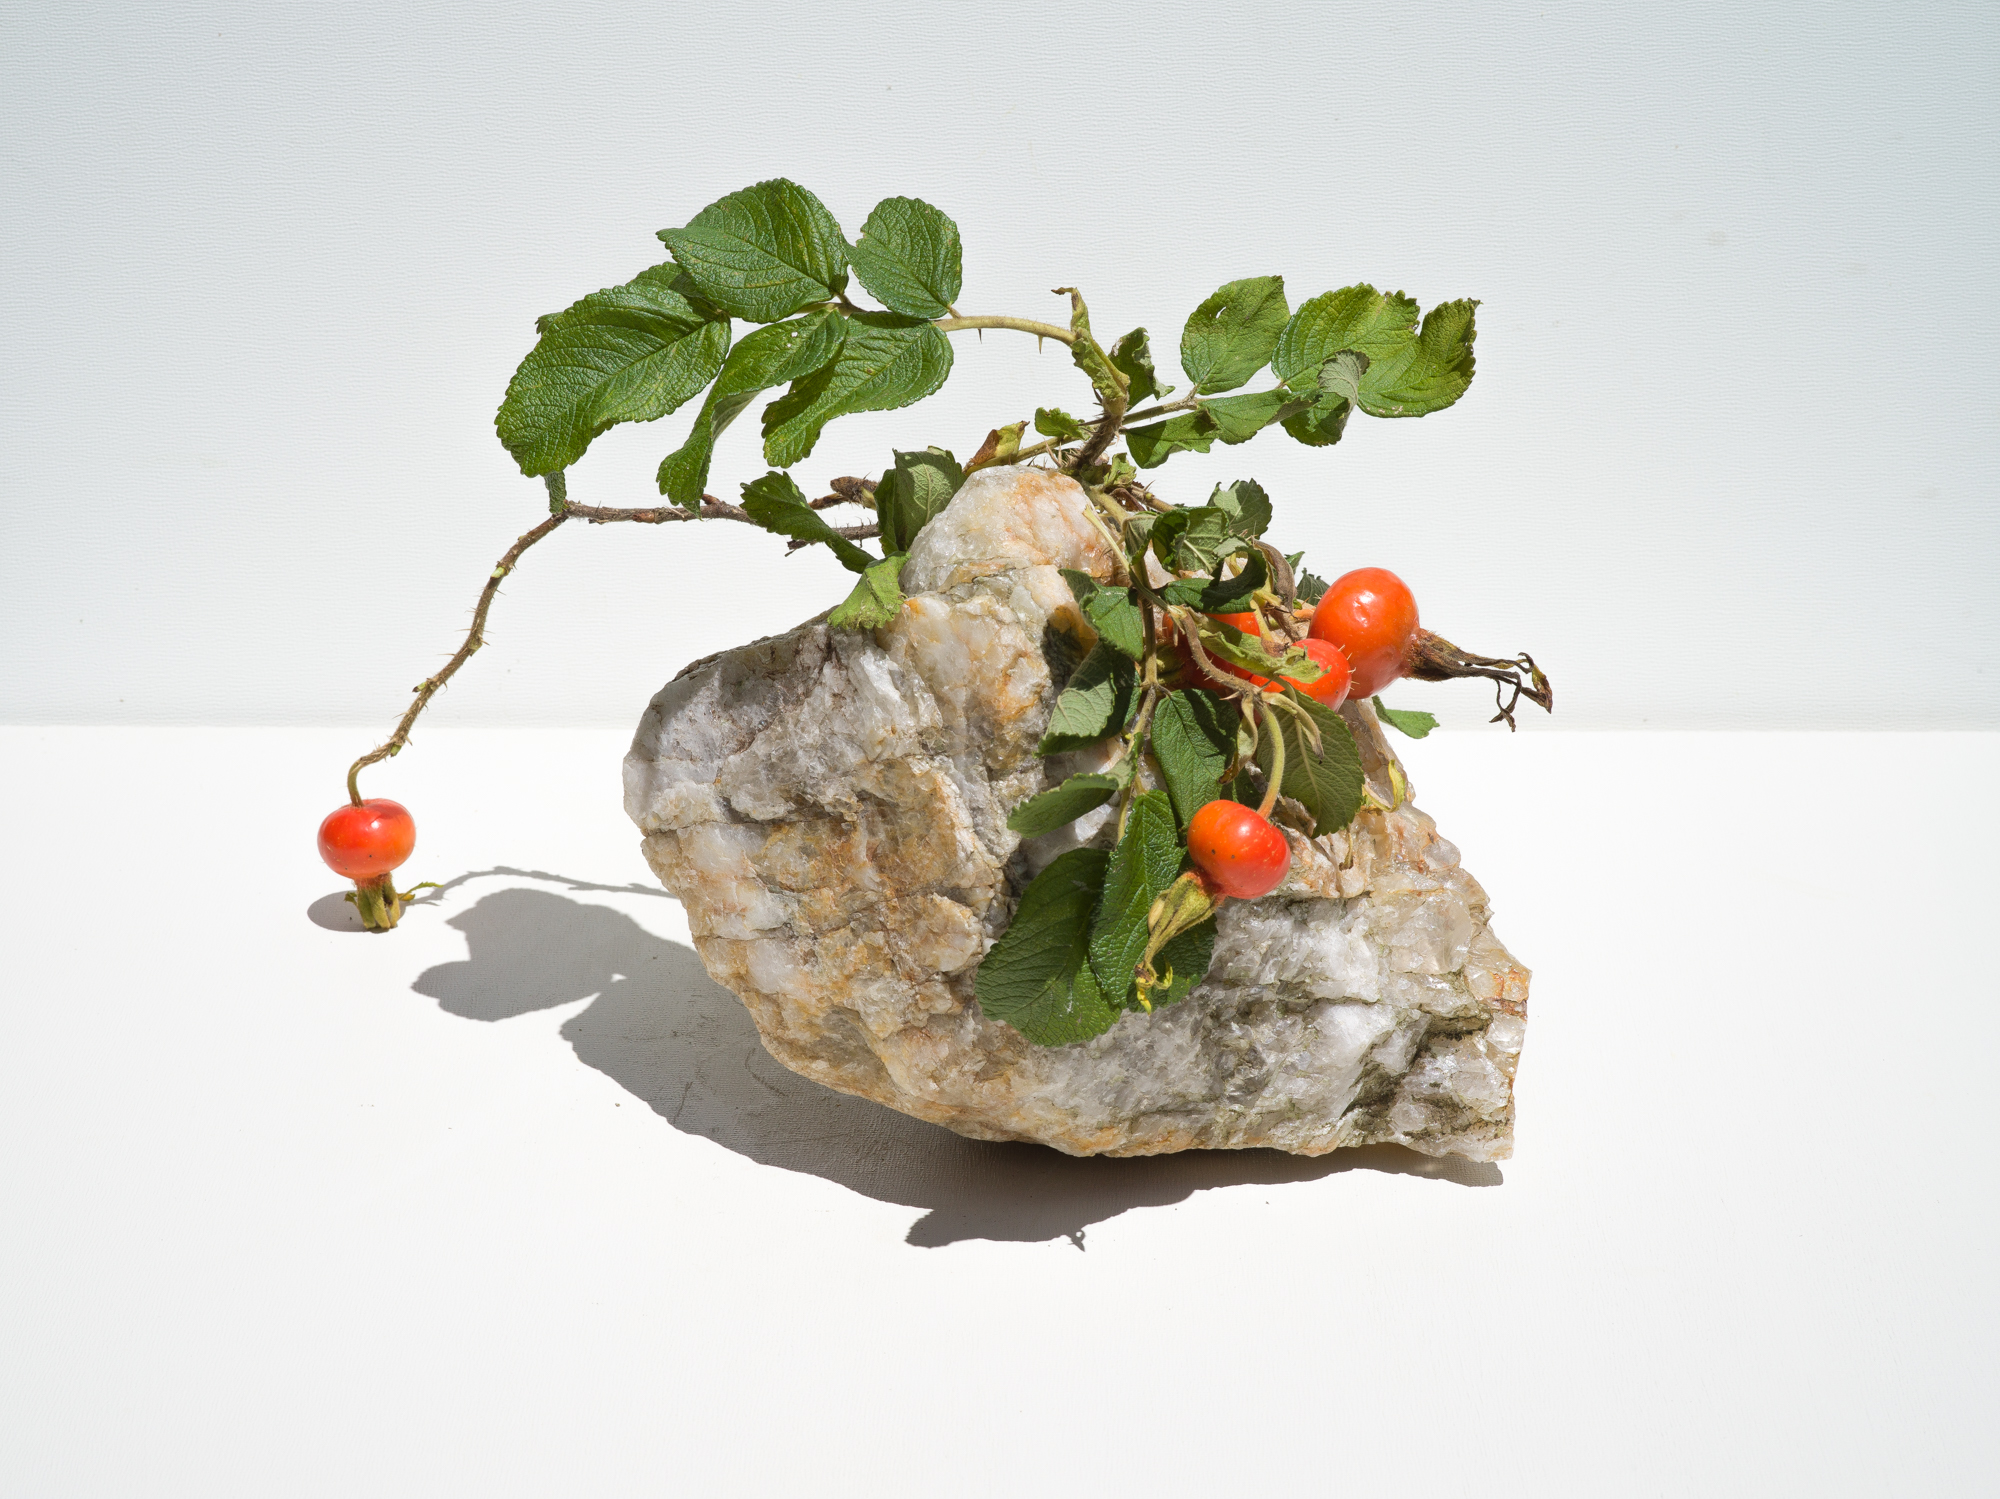 Rose Hip with Quartz, 2018  Signed on verso chromogenic dye coupler print 30 x 30 inches Edition of 3 + 1AP 48 x 48 inches Edition of 3 + 1AP